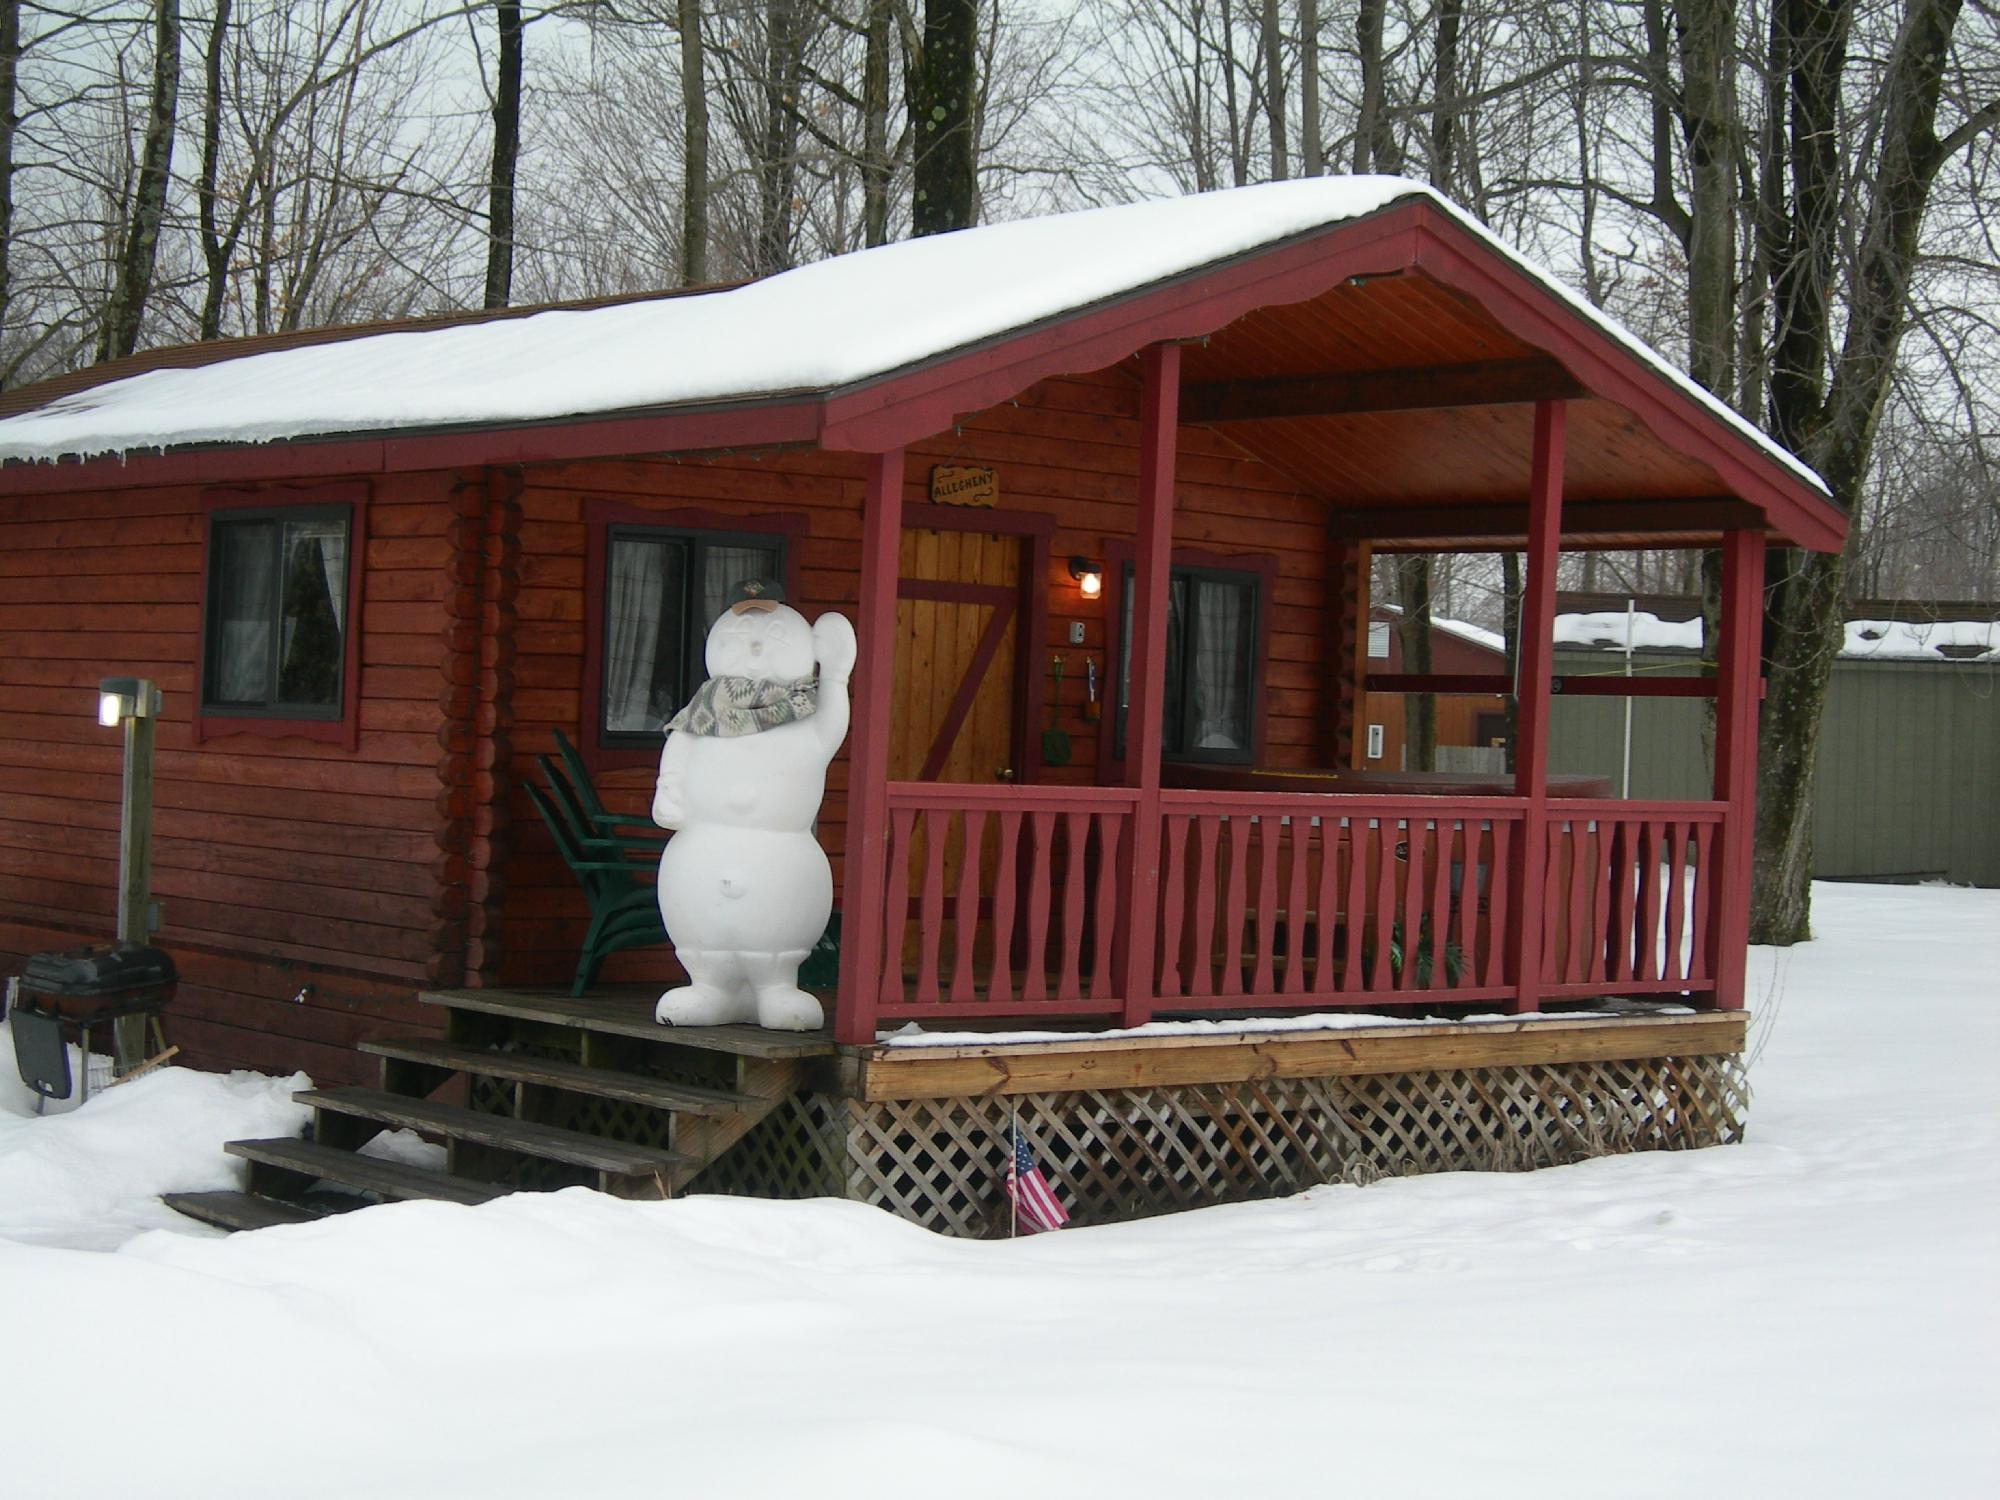 Forest Ridge Campground & Cabins